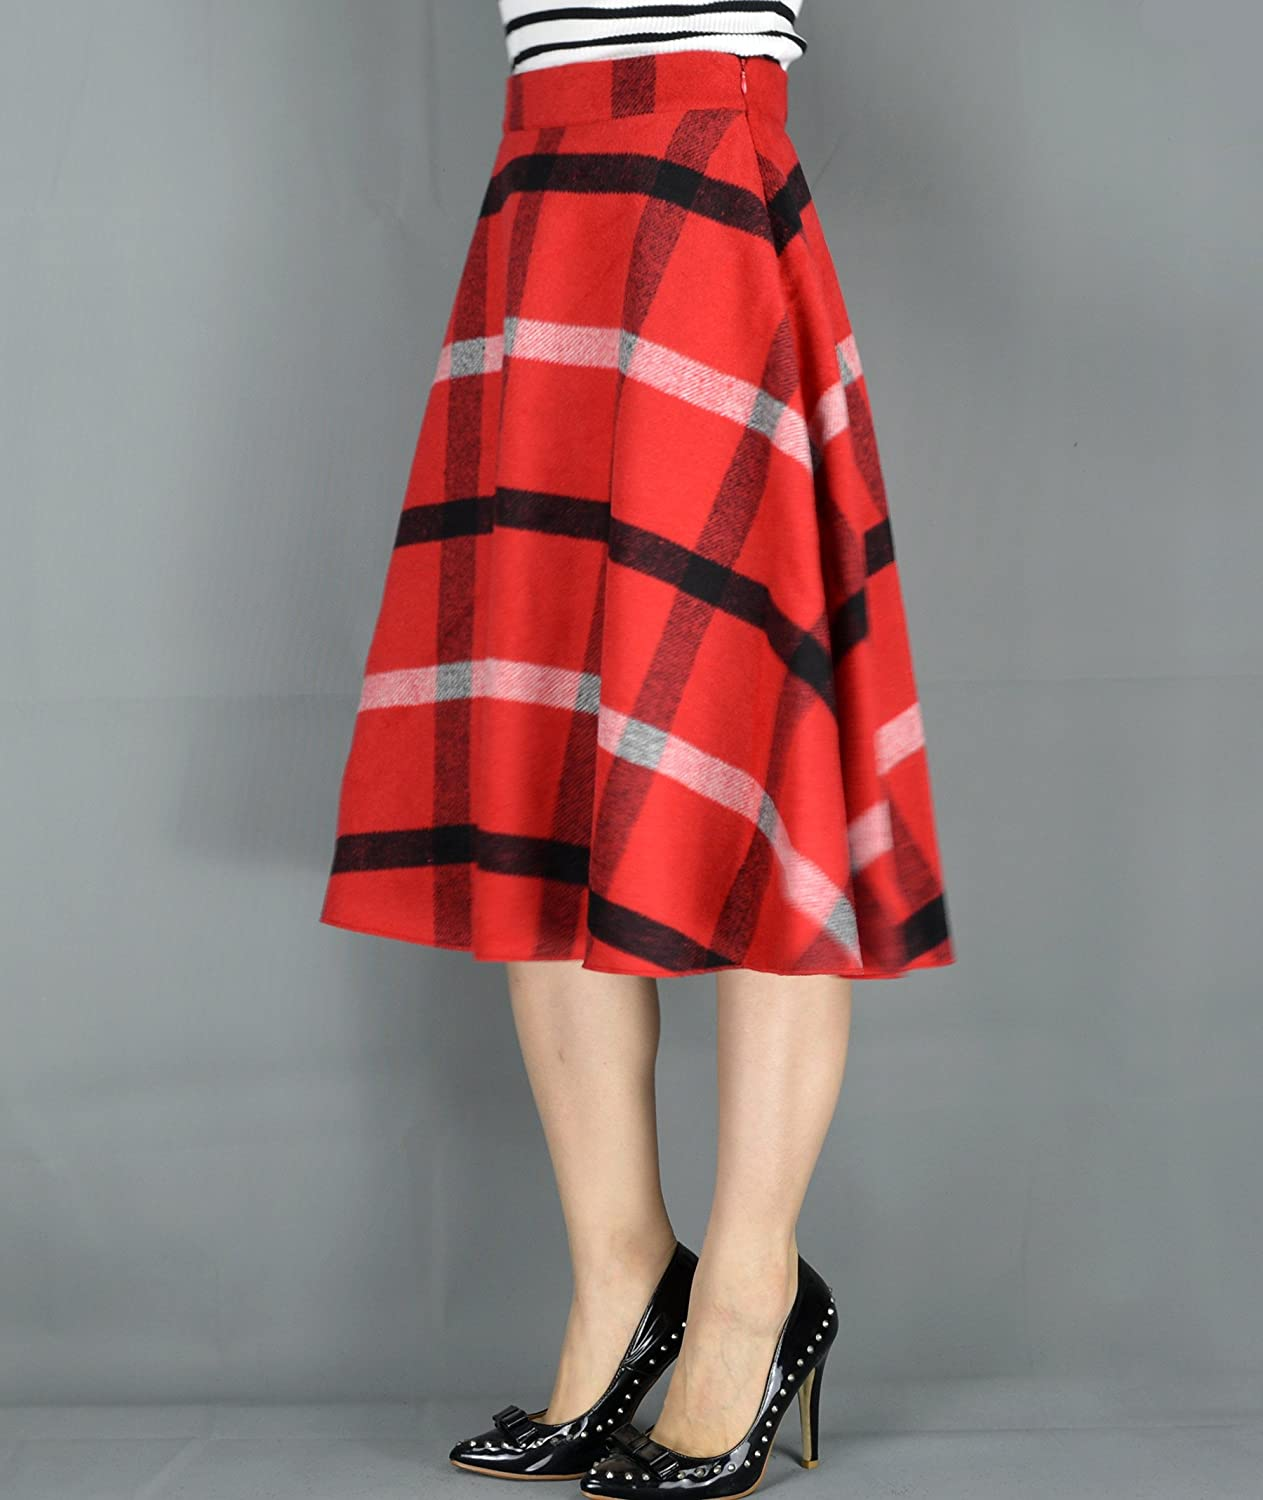 1950s Swing Skirt, Poodle Skirt, Pencil Skirts YSJERA Womens Wool Midi Skirt A-Line Pleated Vintage Plaid Winter Swing Skirts $25.99 AT vintagedancer.com